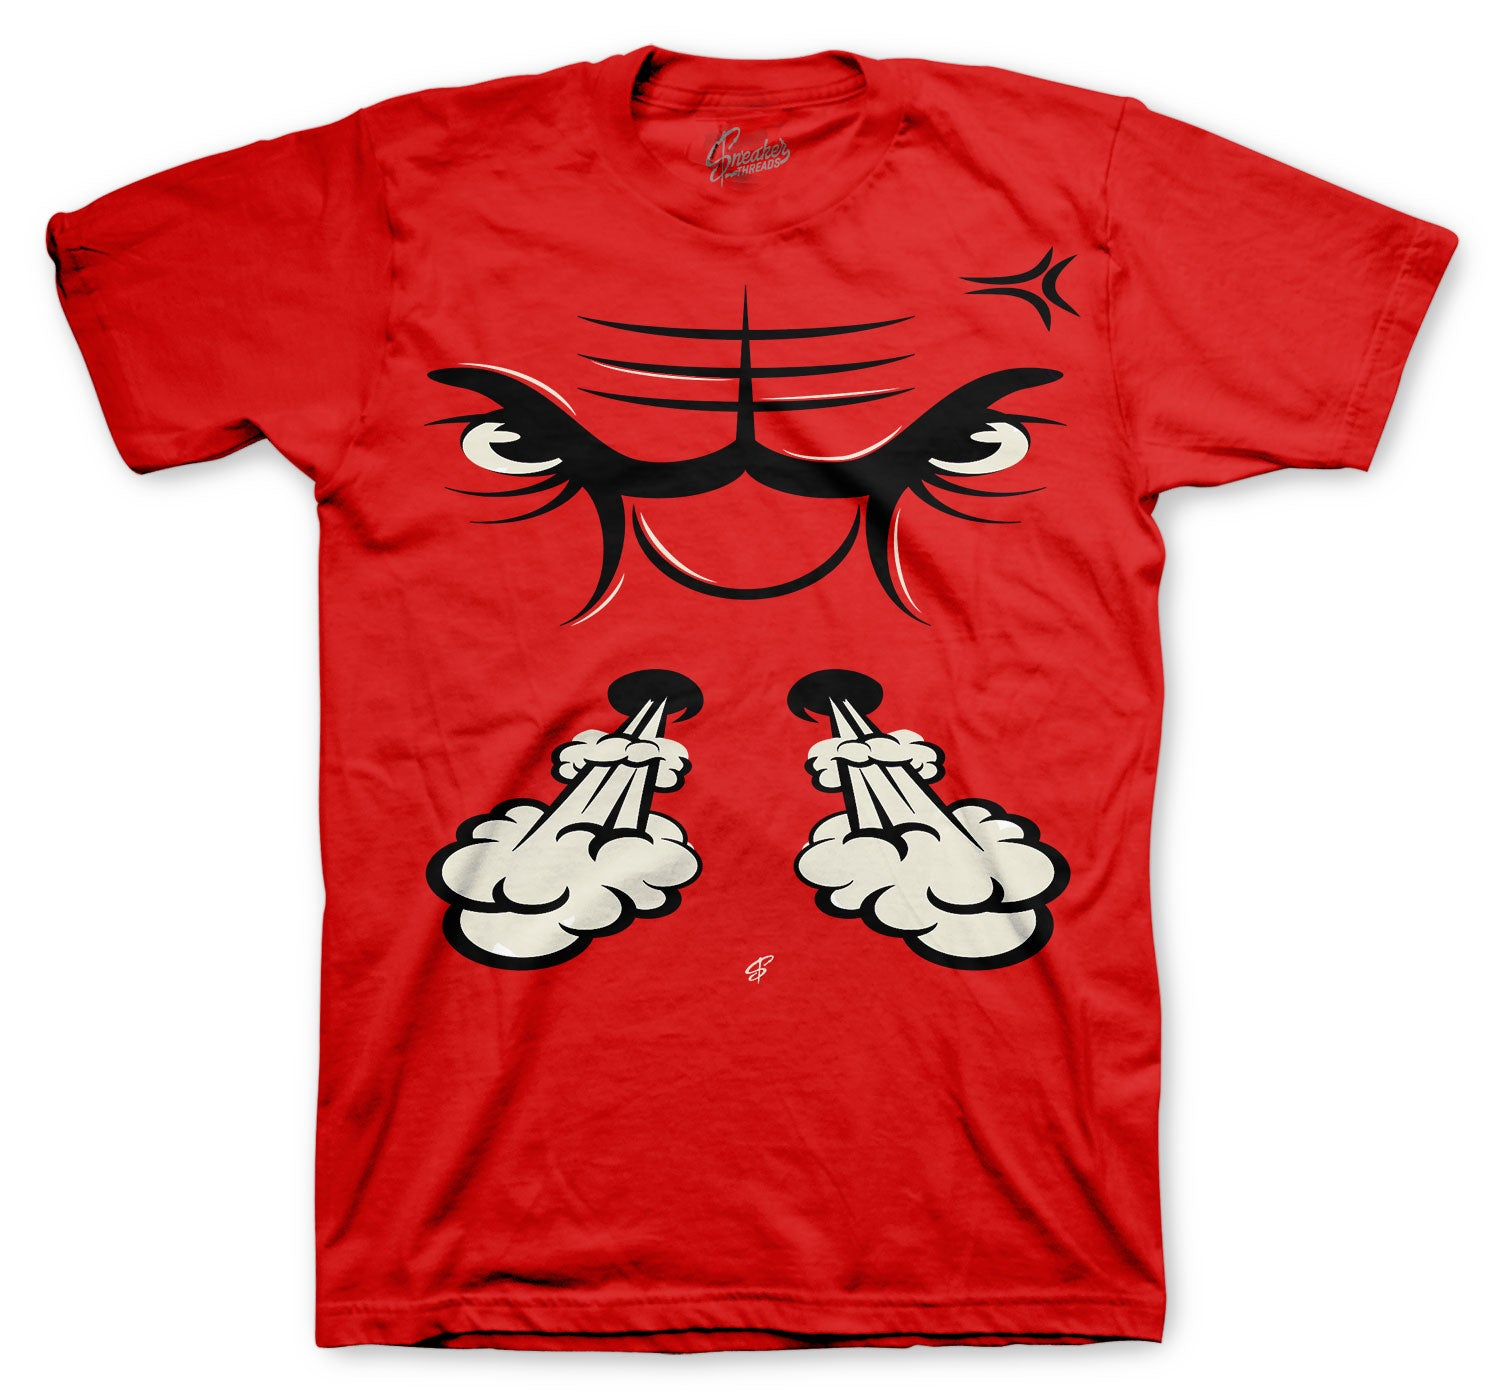 Jordan 12 Super Bowl Shirt - Raging face - Red